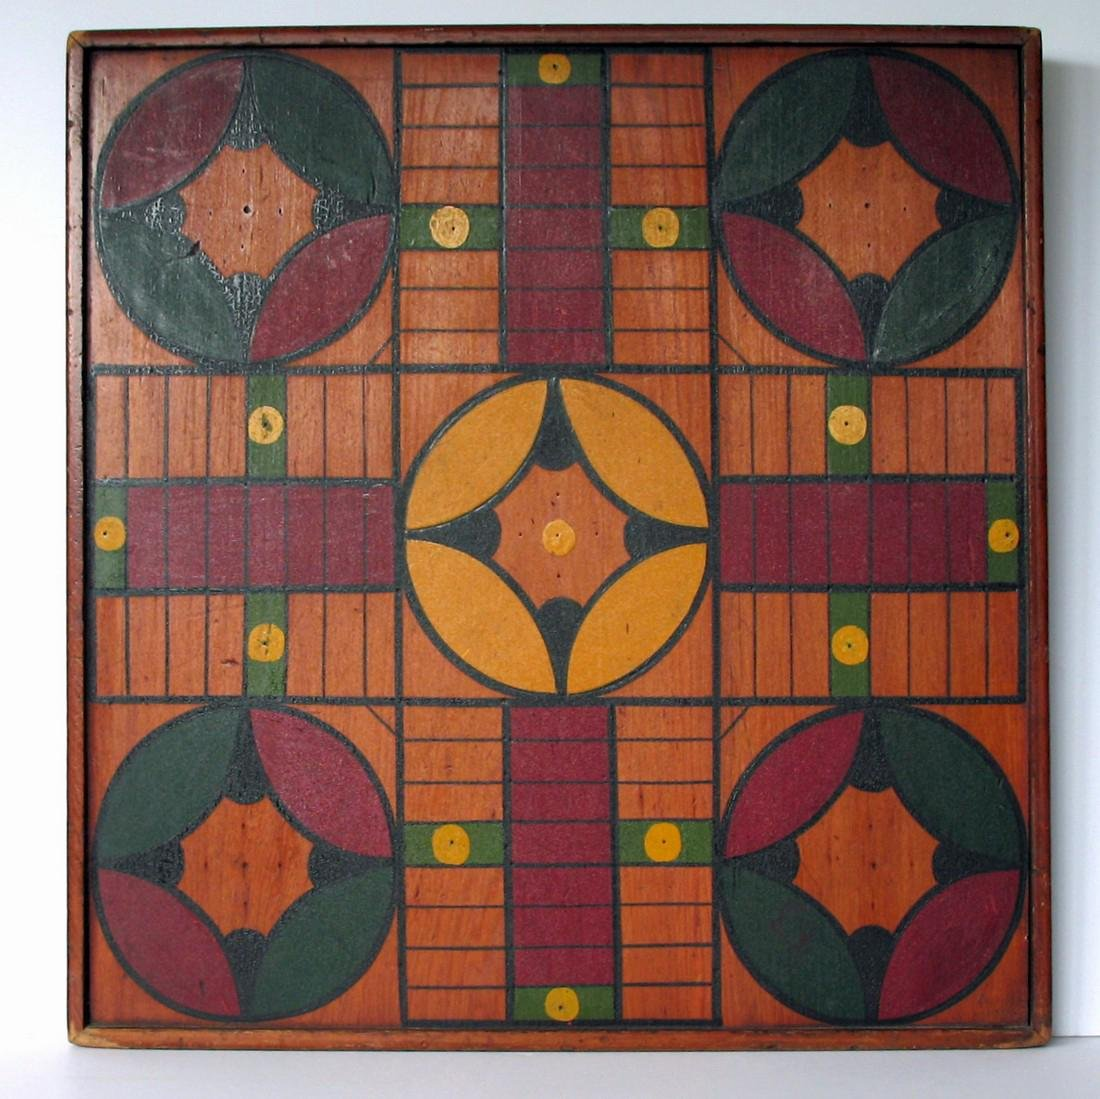 Two Sided Game Board, Parcheesi & Checkers